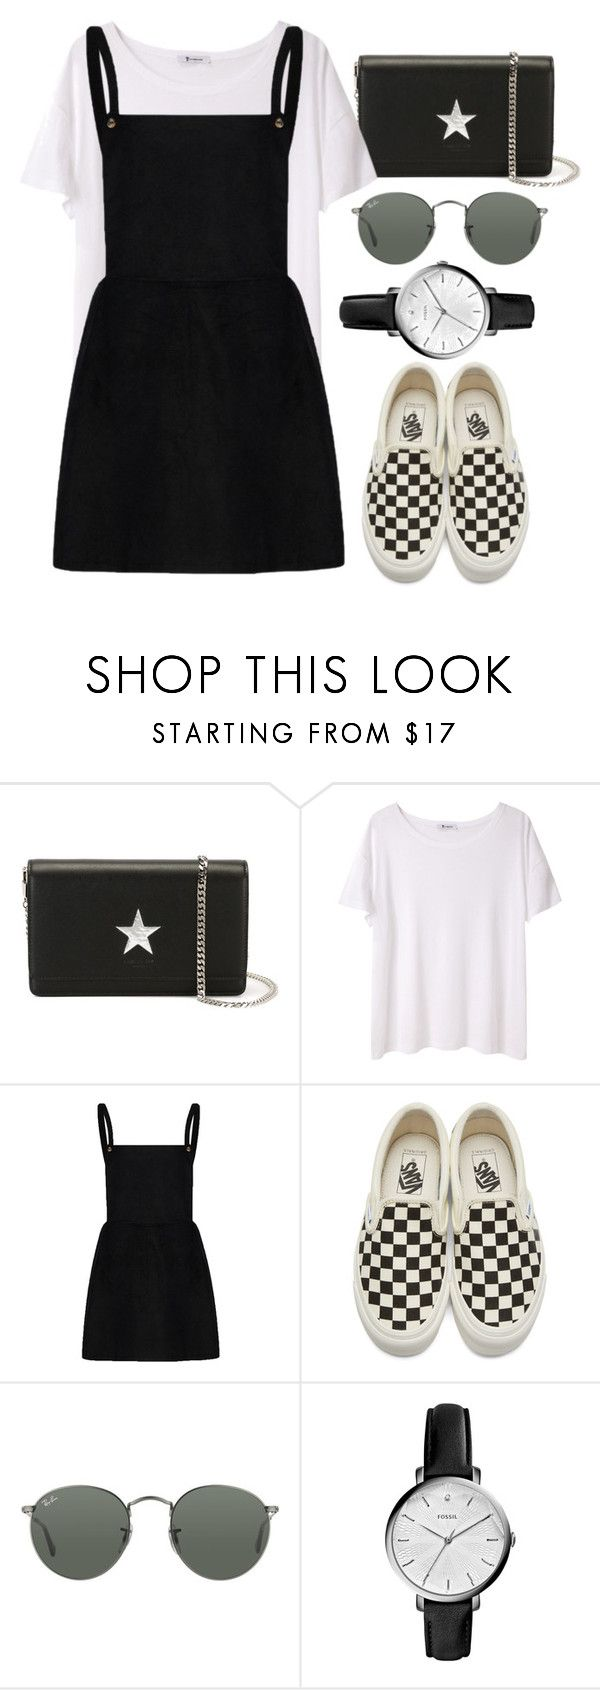 """Sin título #2278"" by alx97 ❤ liked on Polyvore featuring Givenchy, T By Alexander Wang, Vans, Ray-Ban and FOSSIL"